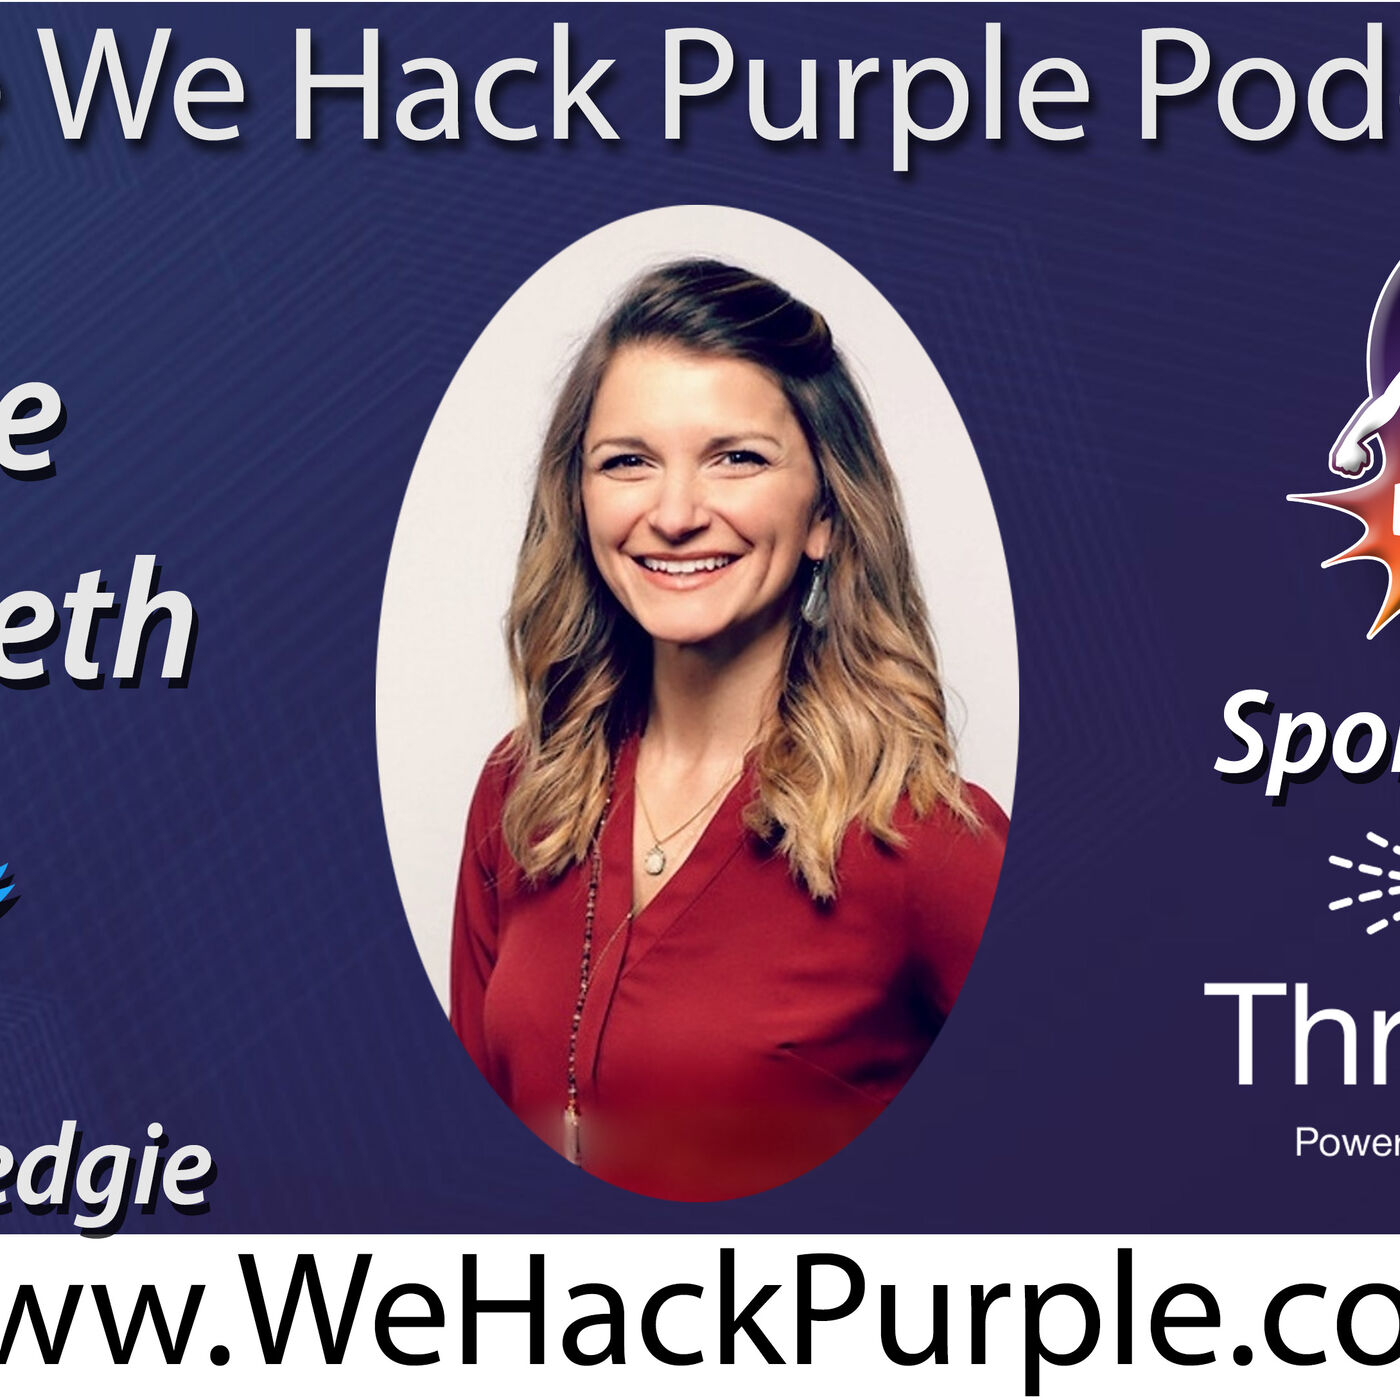 We Hack Purple Podcast Episode 33 with Guest Annie Hedgpeth